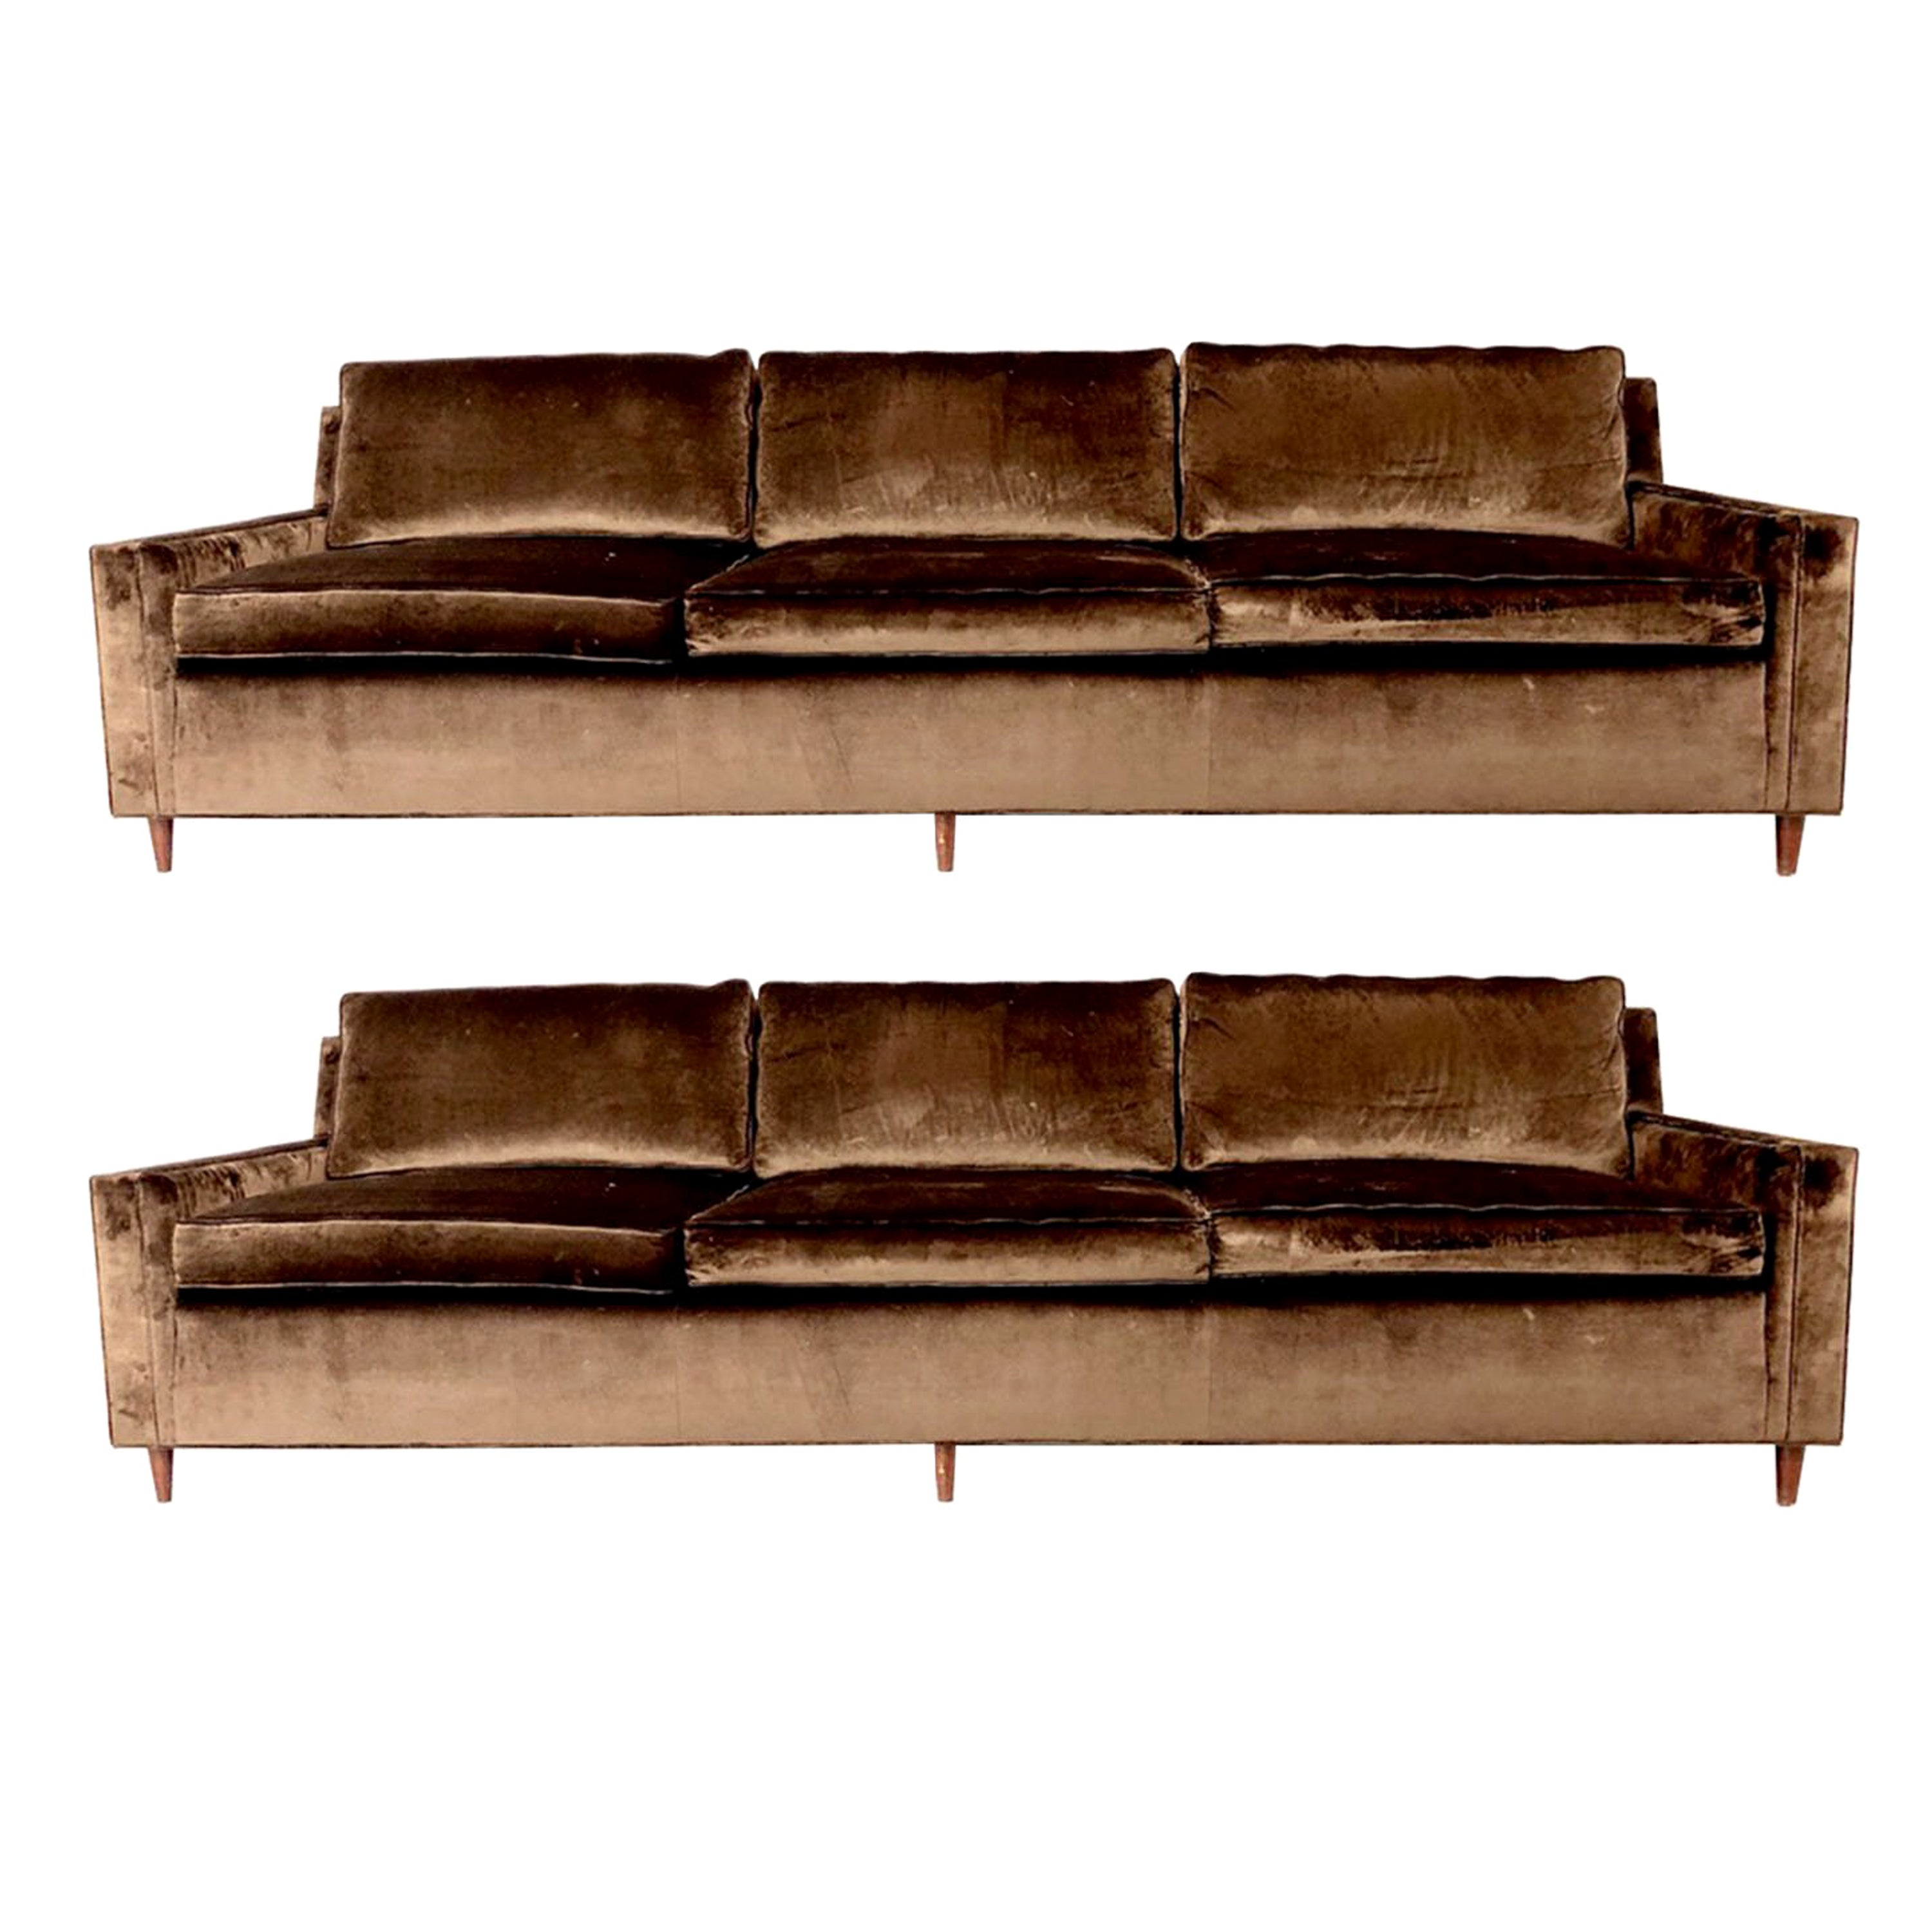 Incroyable MCM Velvet Sofas In The Style Of Dunbar (One Available)